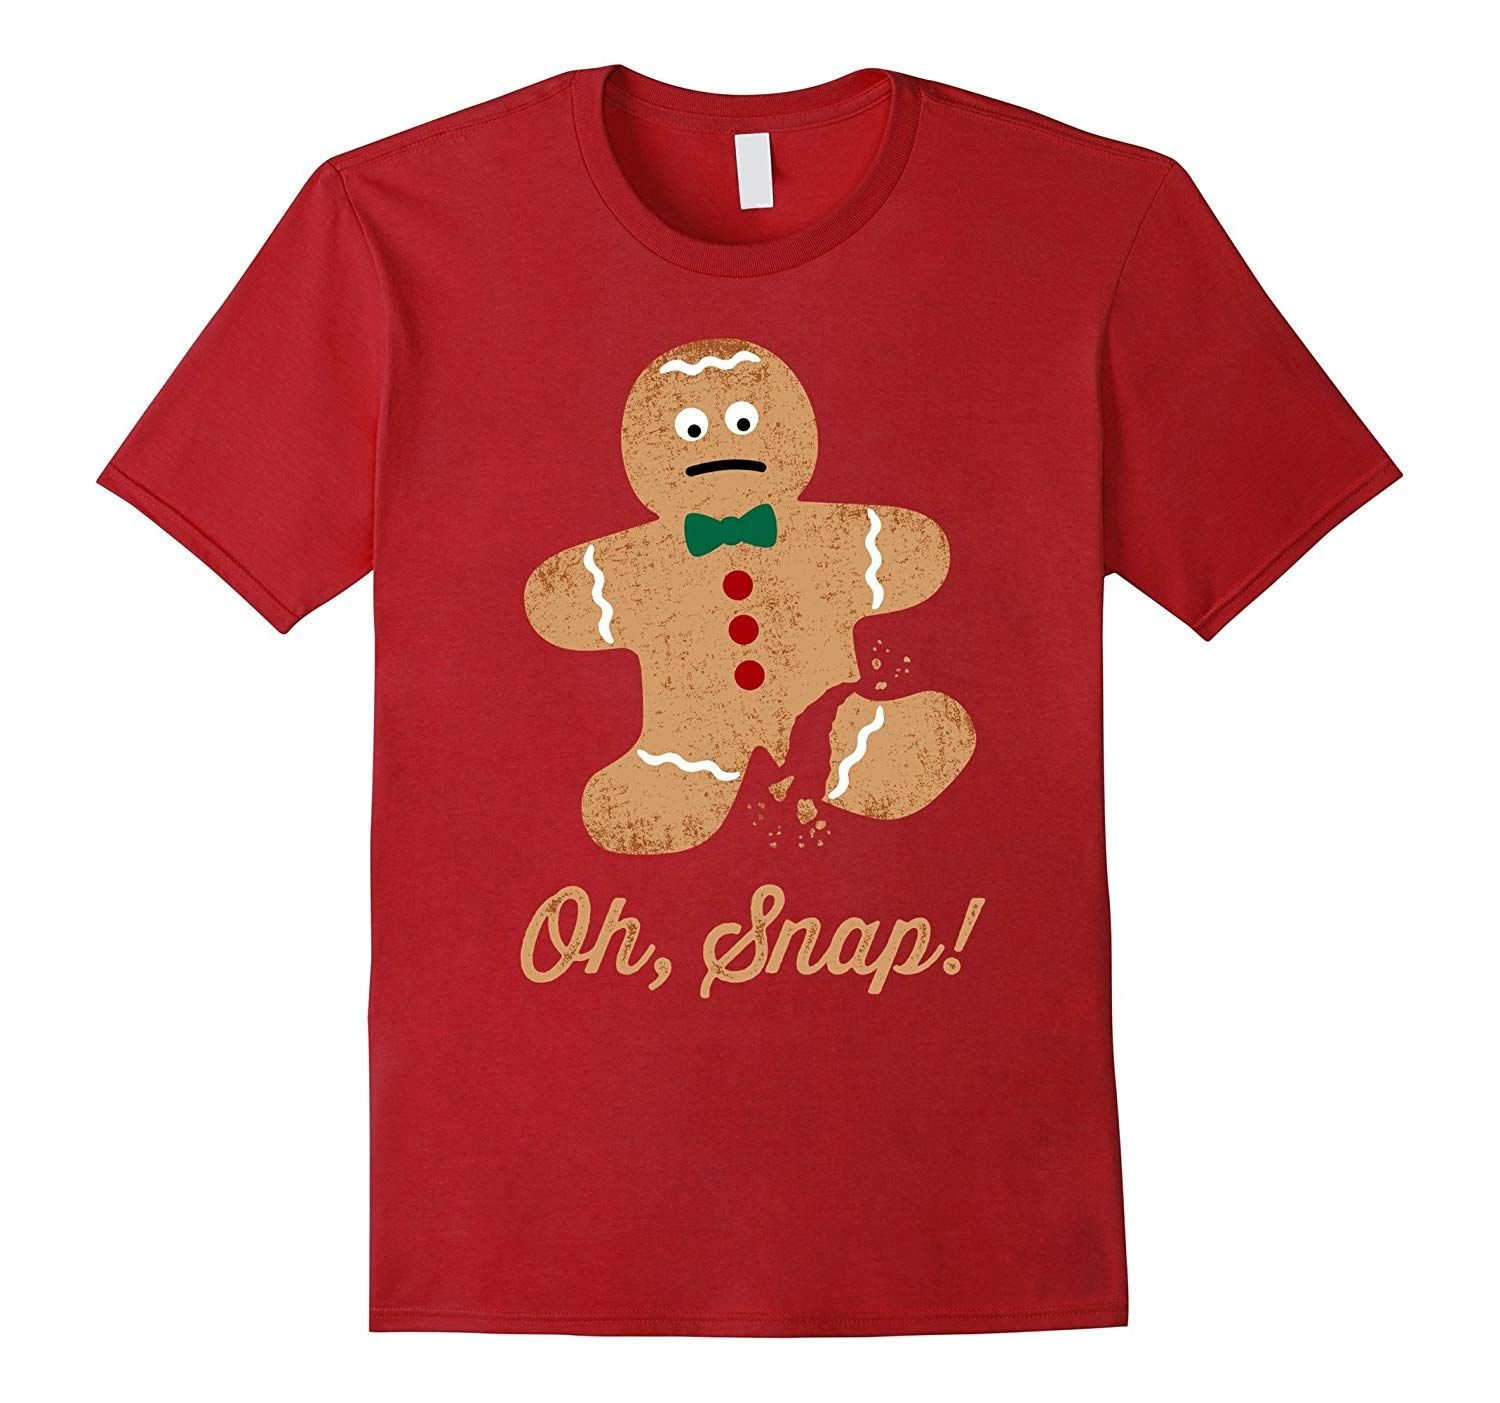 Oh Snap Gingerbread Man Funny Christmas T Shirt Funny Christmas Tshirts Christmas Tshirts Christmas Humor